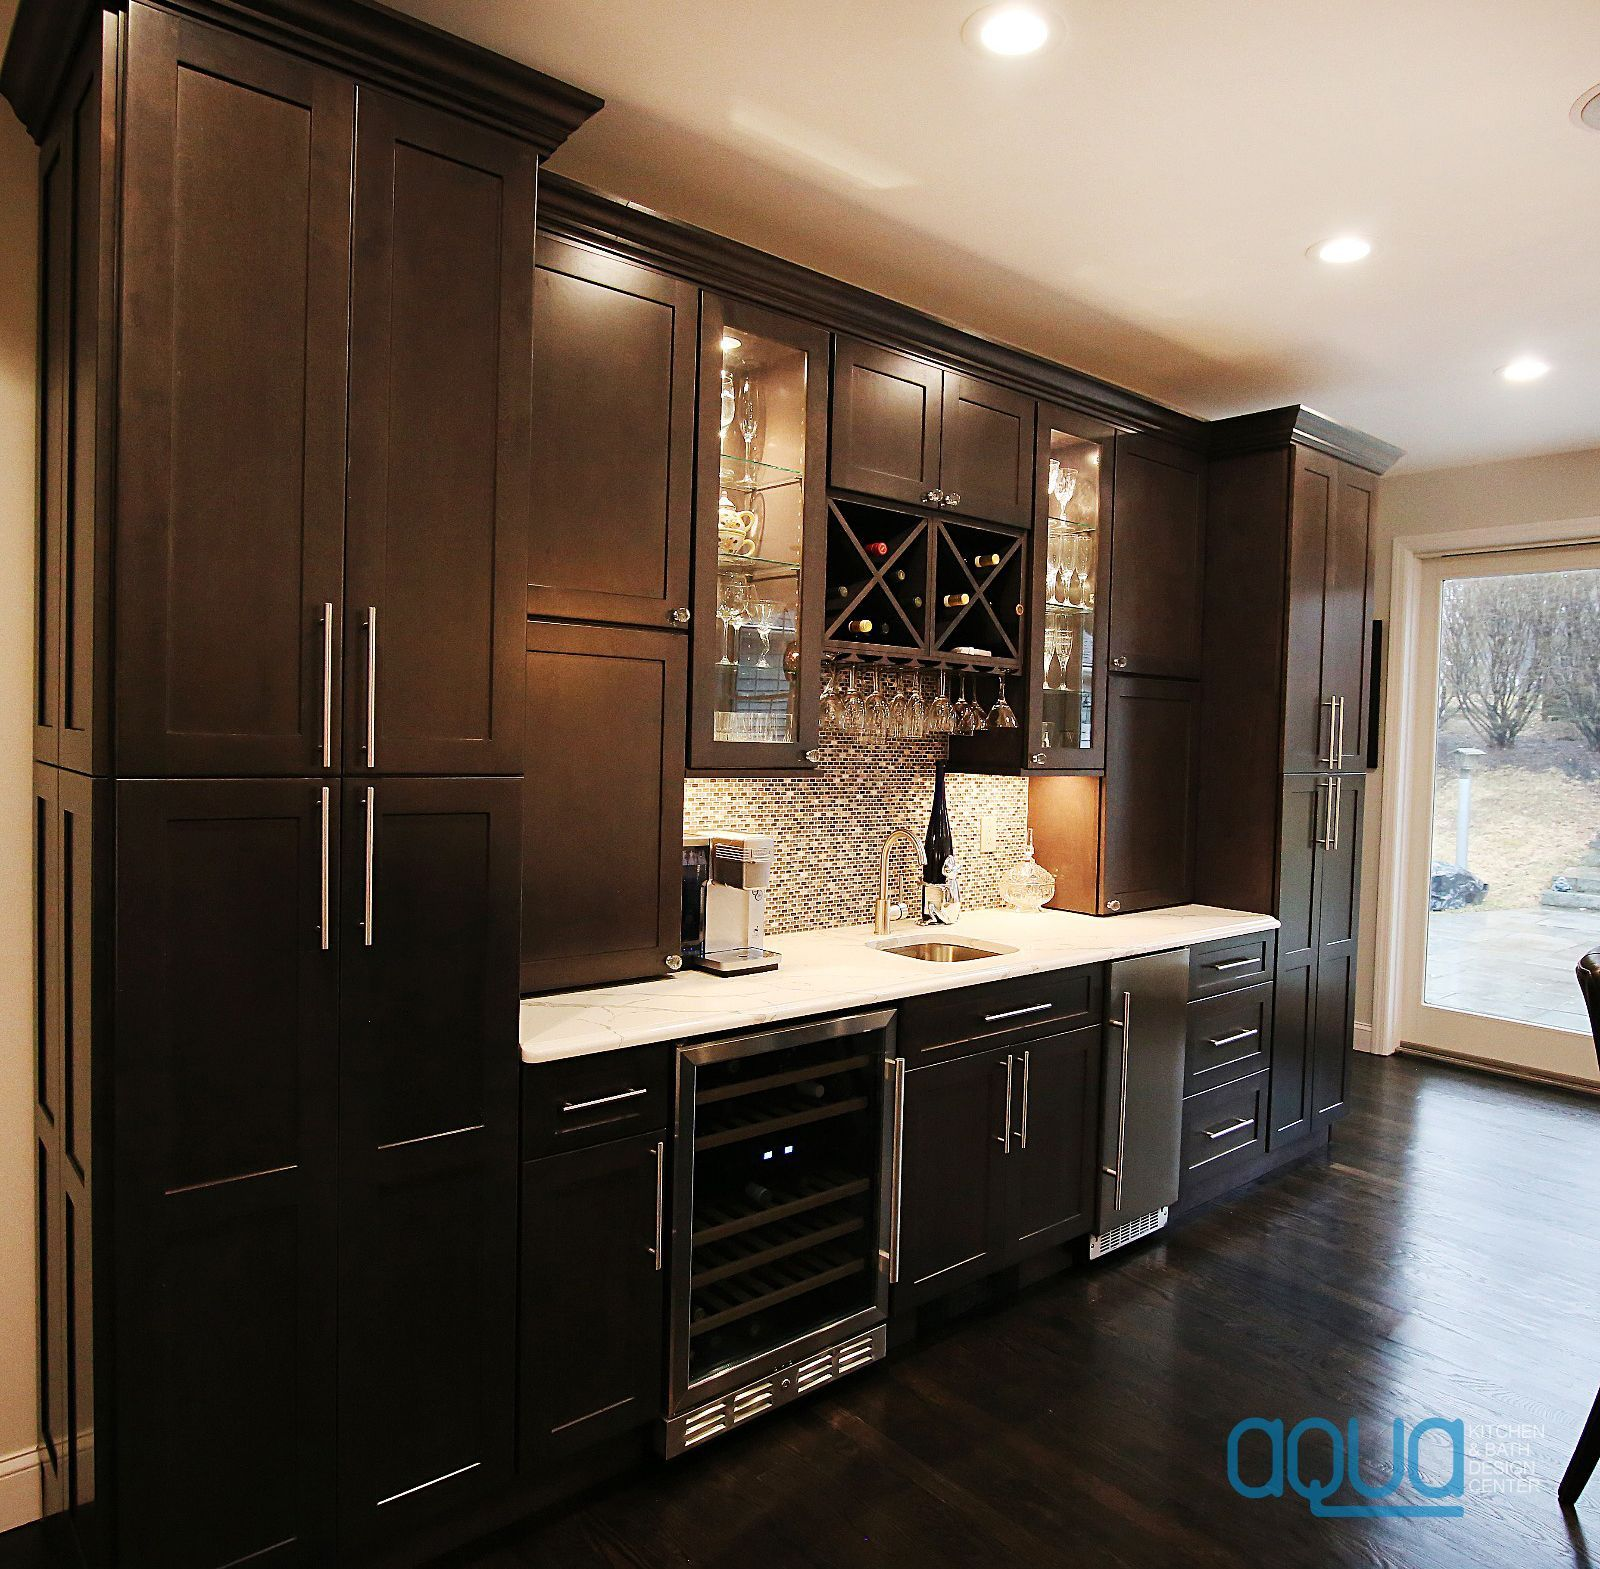 Can You Picture It In Your Kitchen Pure Luxury And Elegance That Will Dazzle All Of Your Kitchen Cabinets And Countertops Custom Kitchen Cabinets Aqua Kitchen